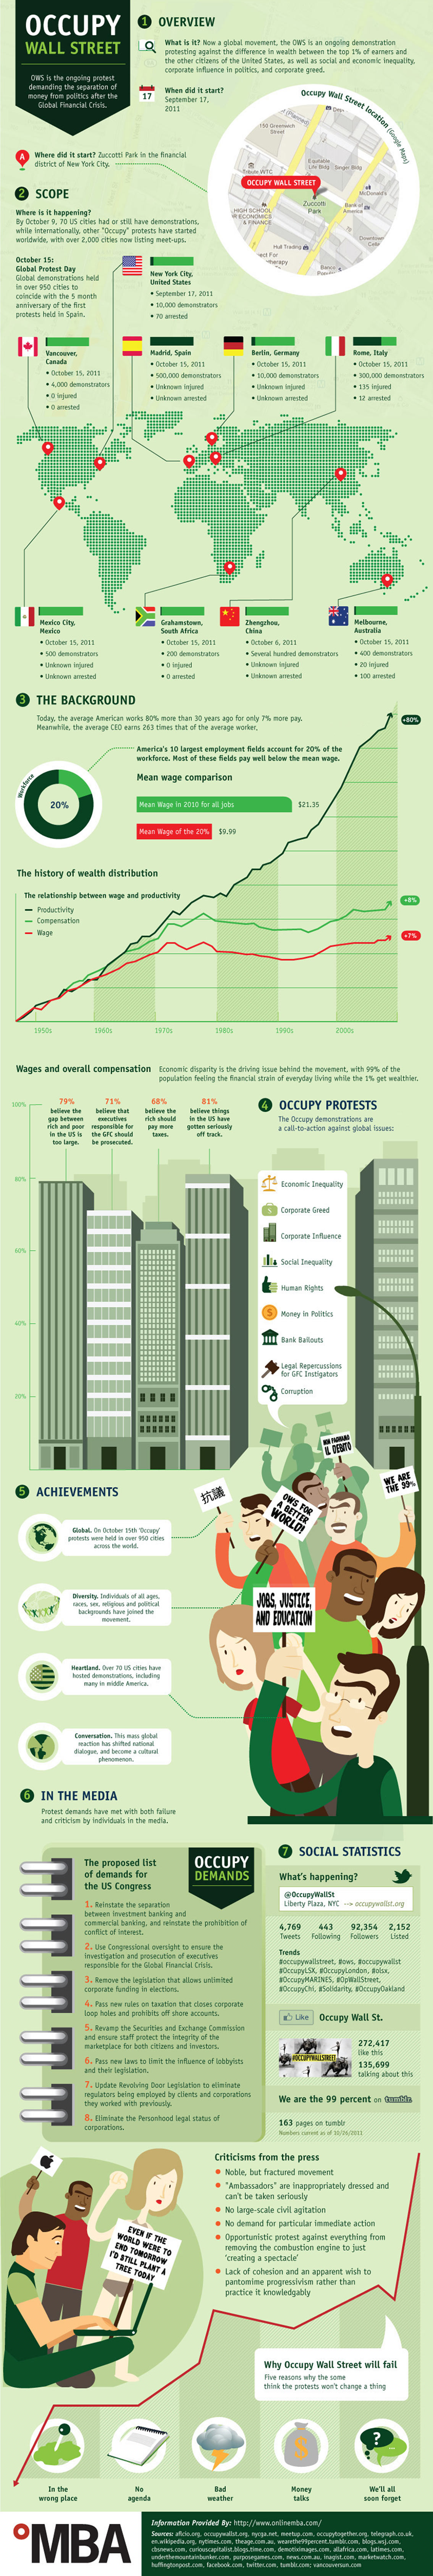 Occupy Wall street Protest Infographic